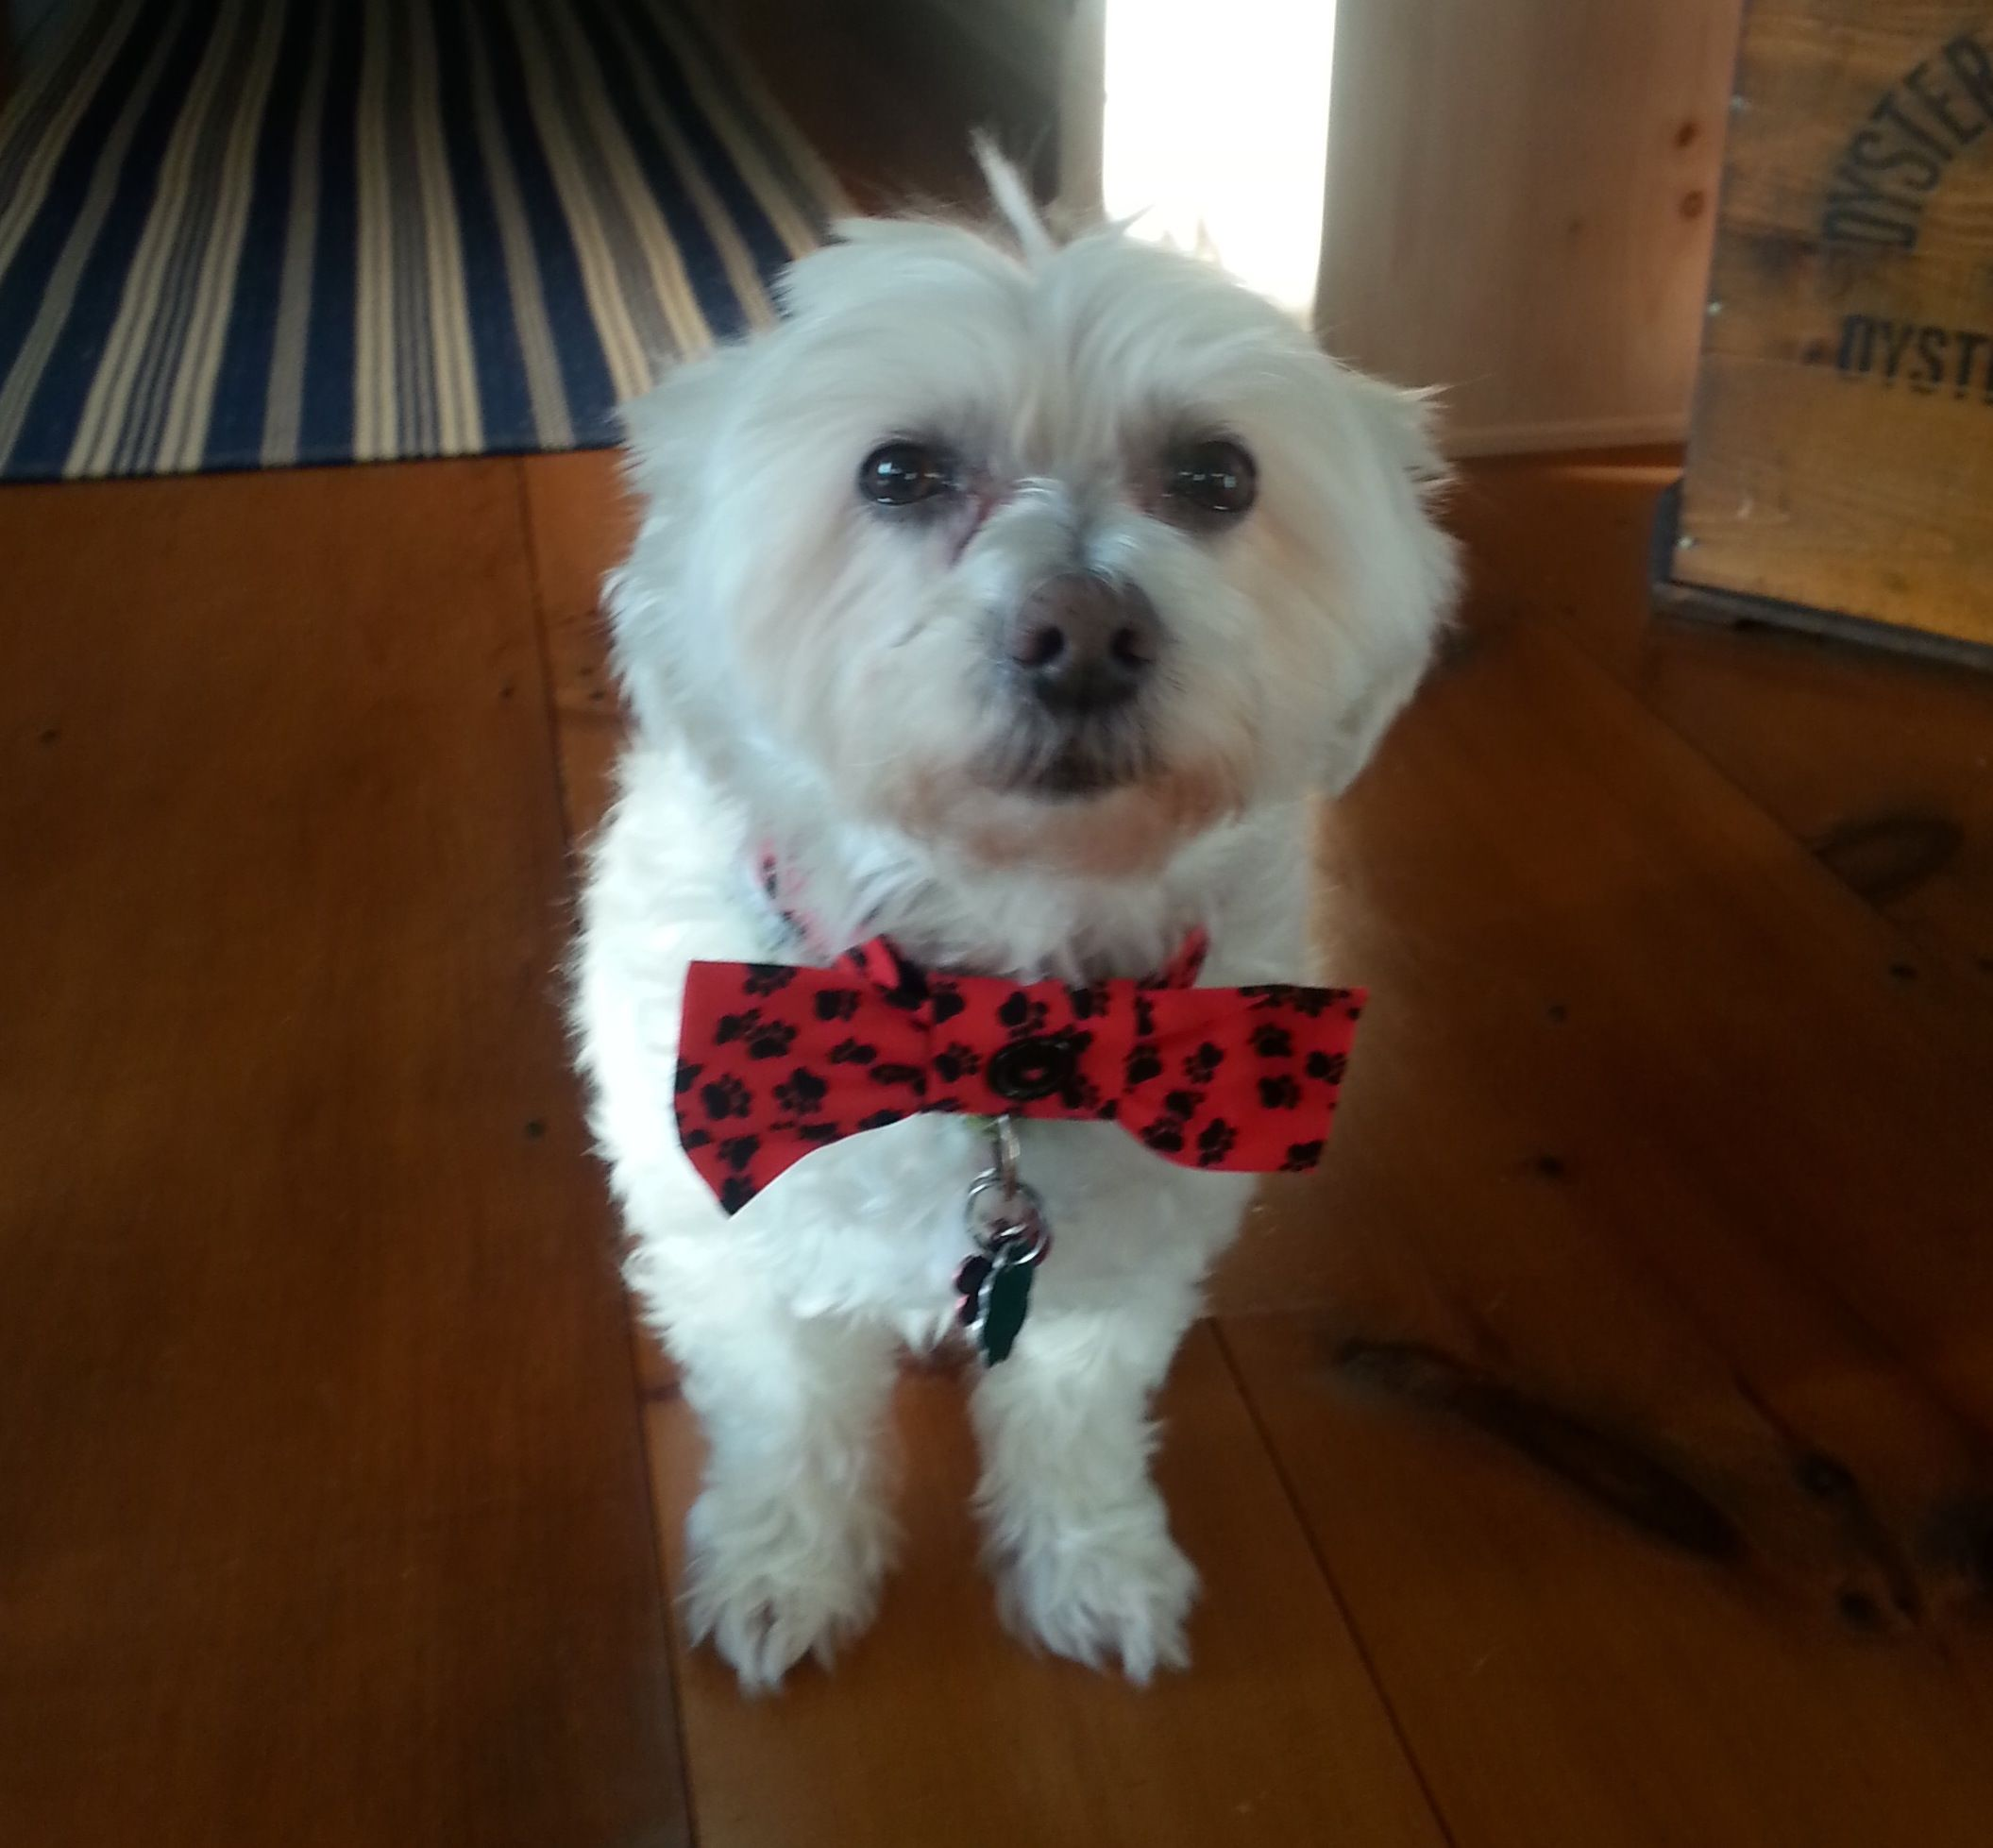 Muppet in NY Available for Adoption from Havanese Rescue